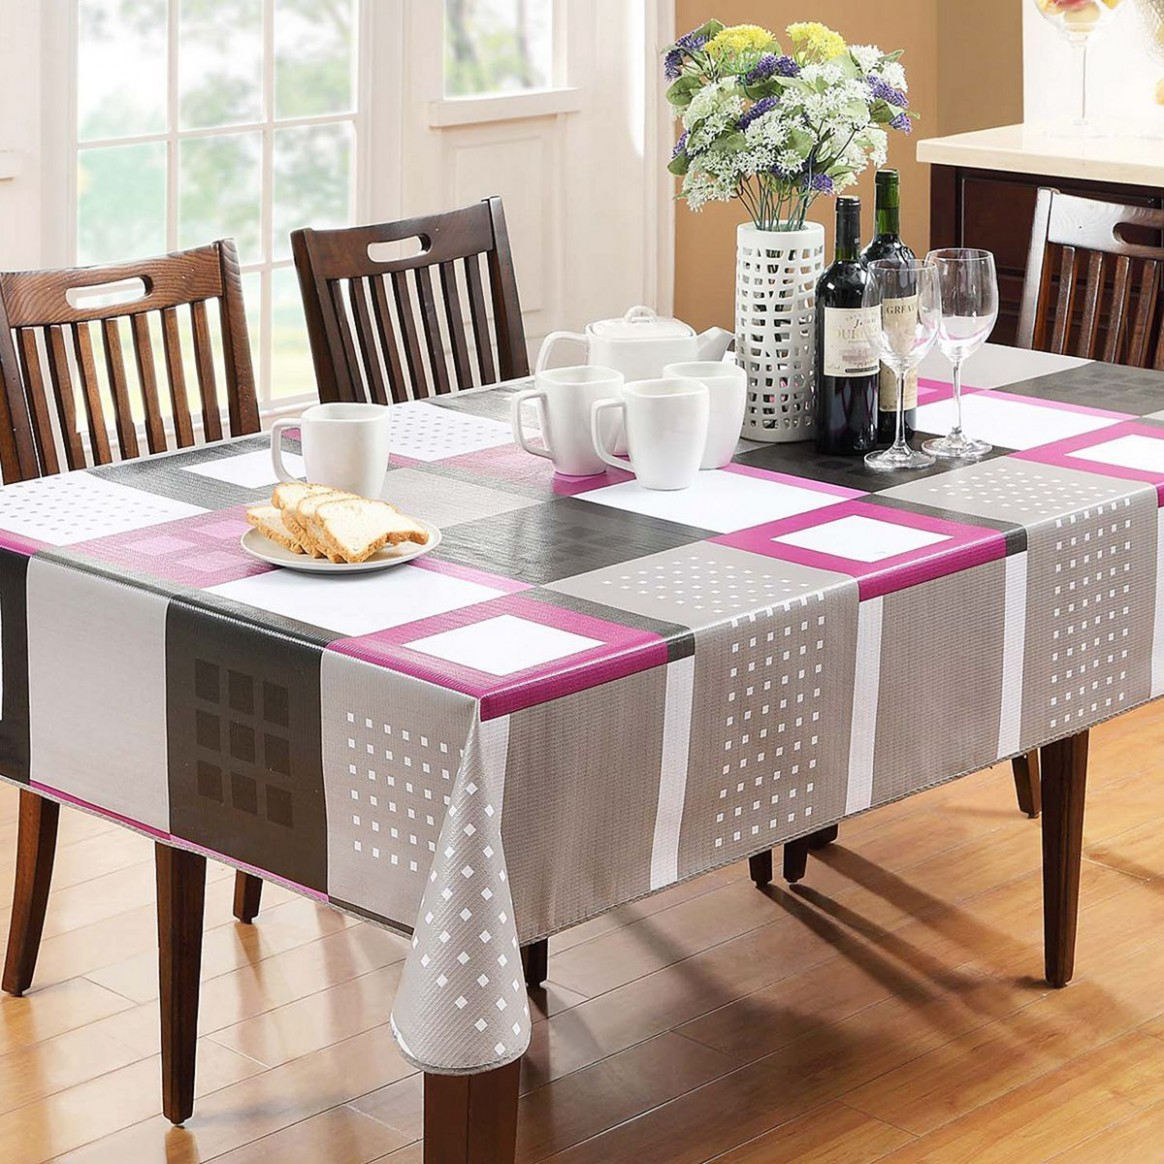 11 Awesome Dining Room Design With Bright Color Dining Table Ideas  - Dining Room Ideas Tablecloth